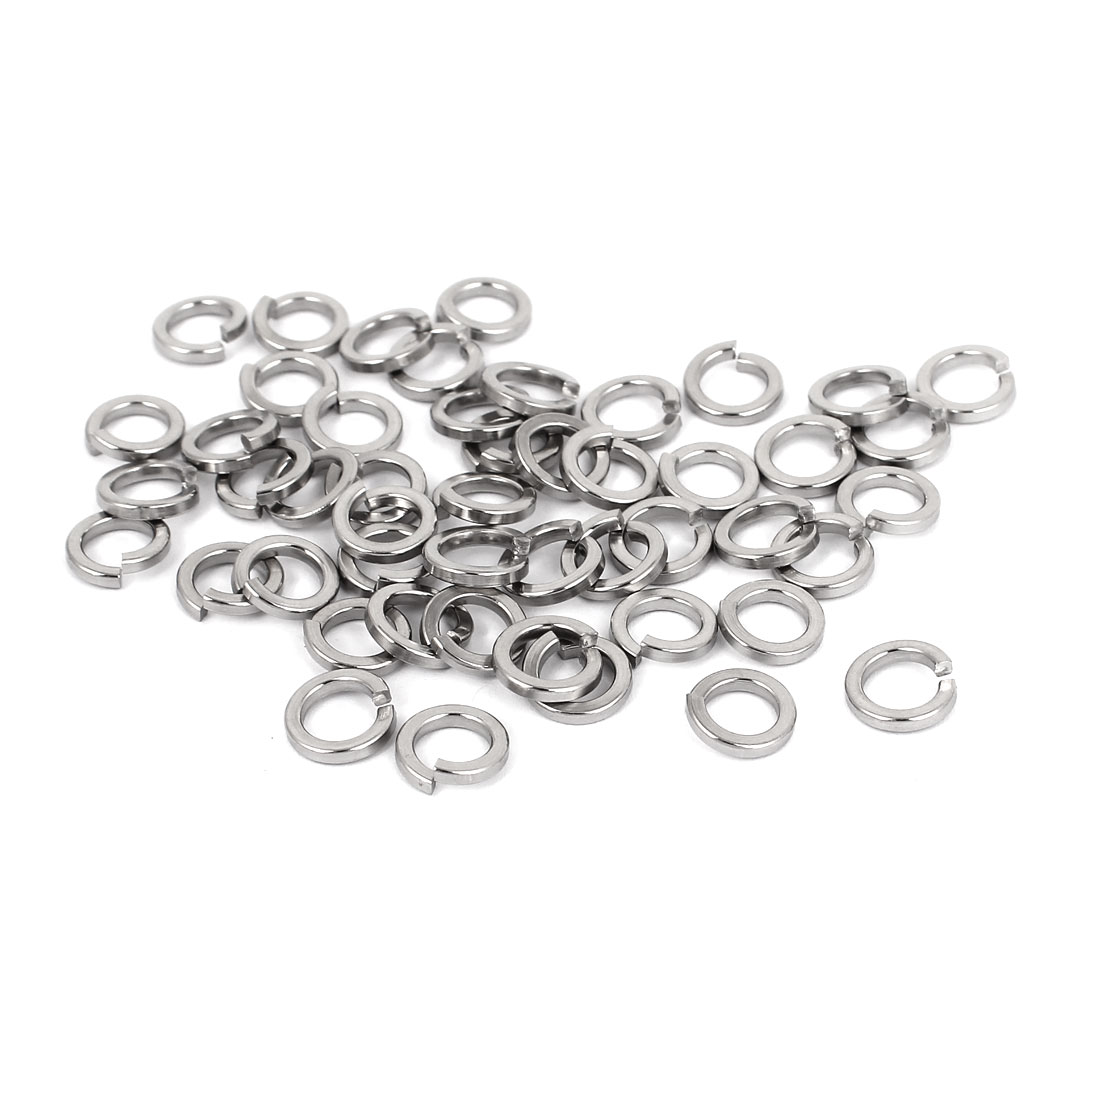 "50pcs 316 Stainless Steel Split Lock Spring Washers 1/4"" Screw Spacer Pad"